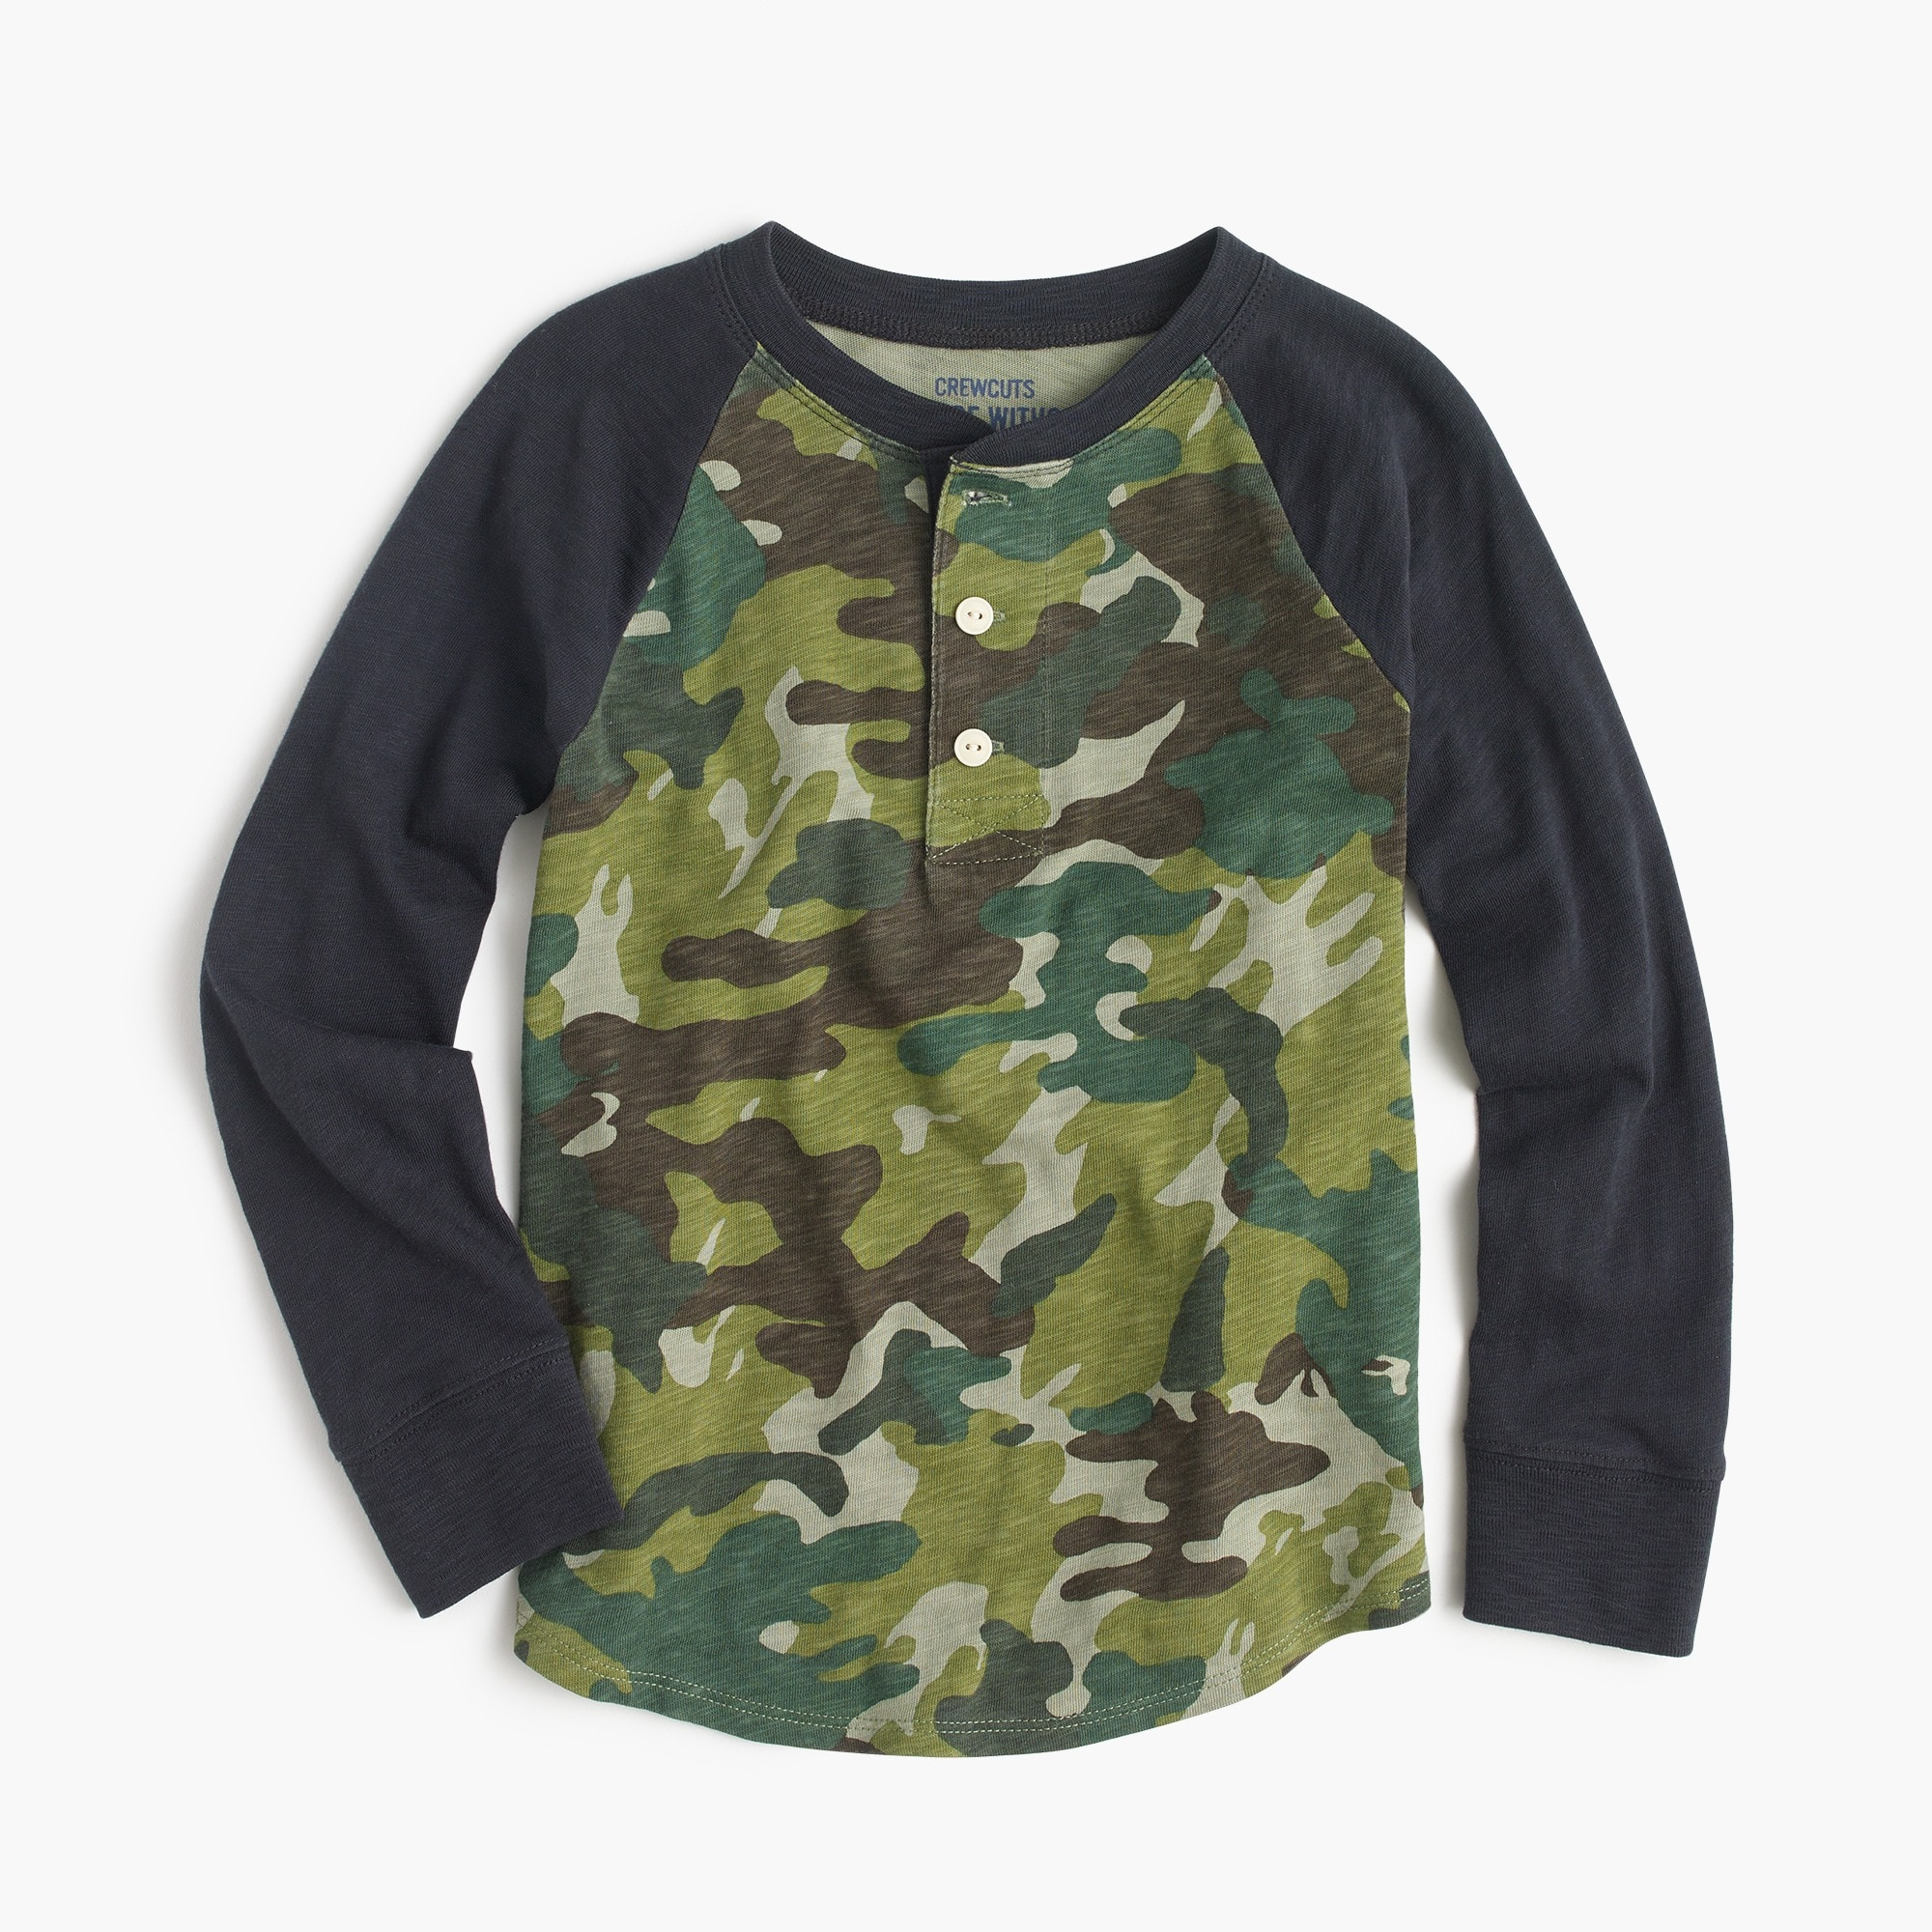 Image 1 for Boys' raglan-sleeve henley shirt in camo print